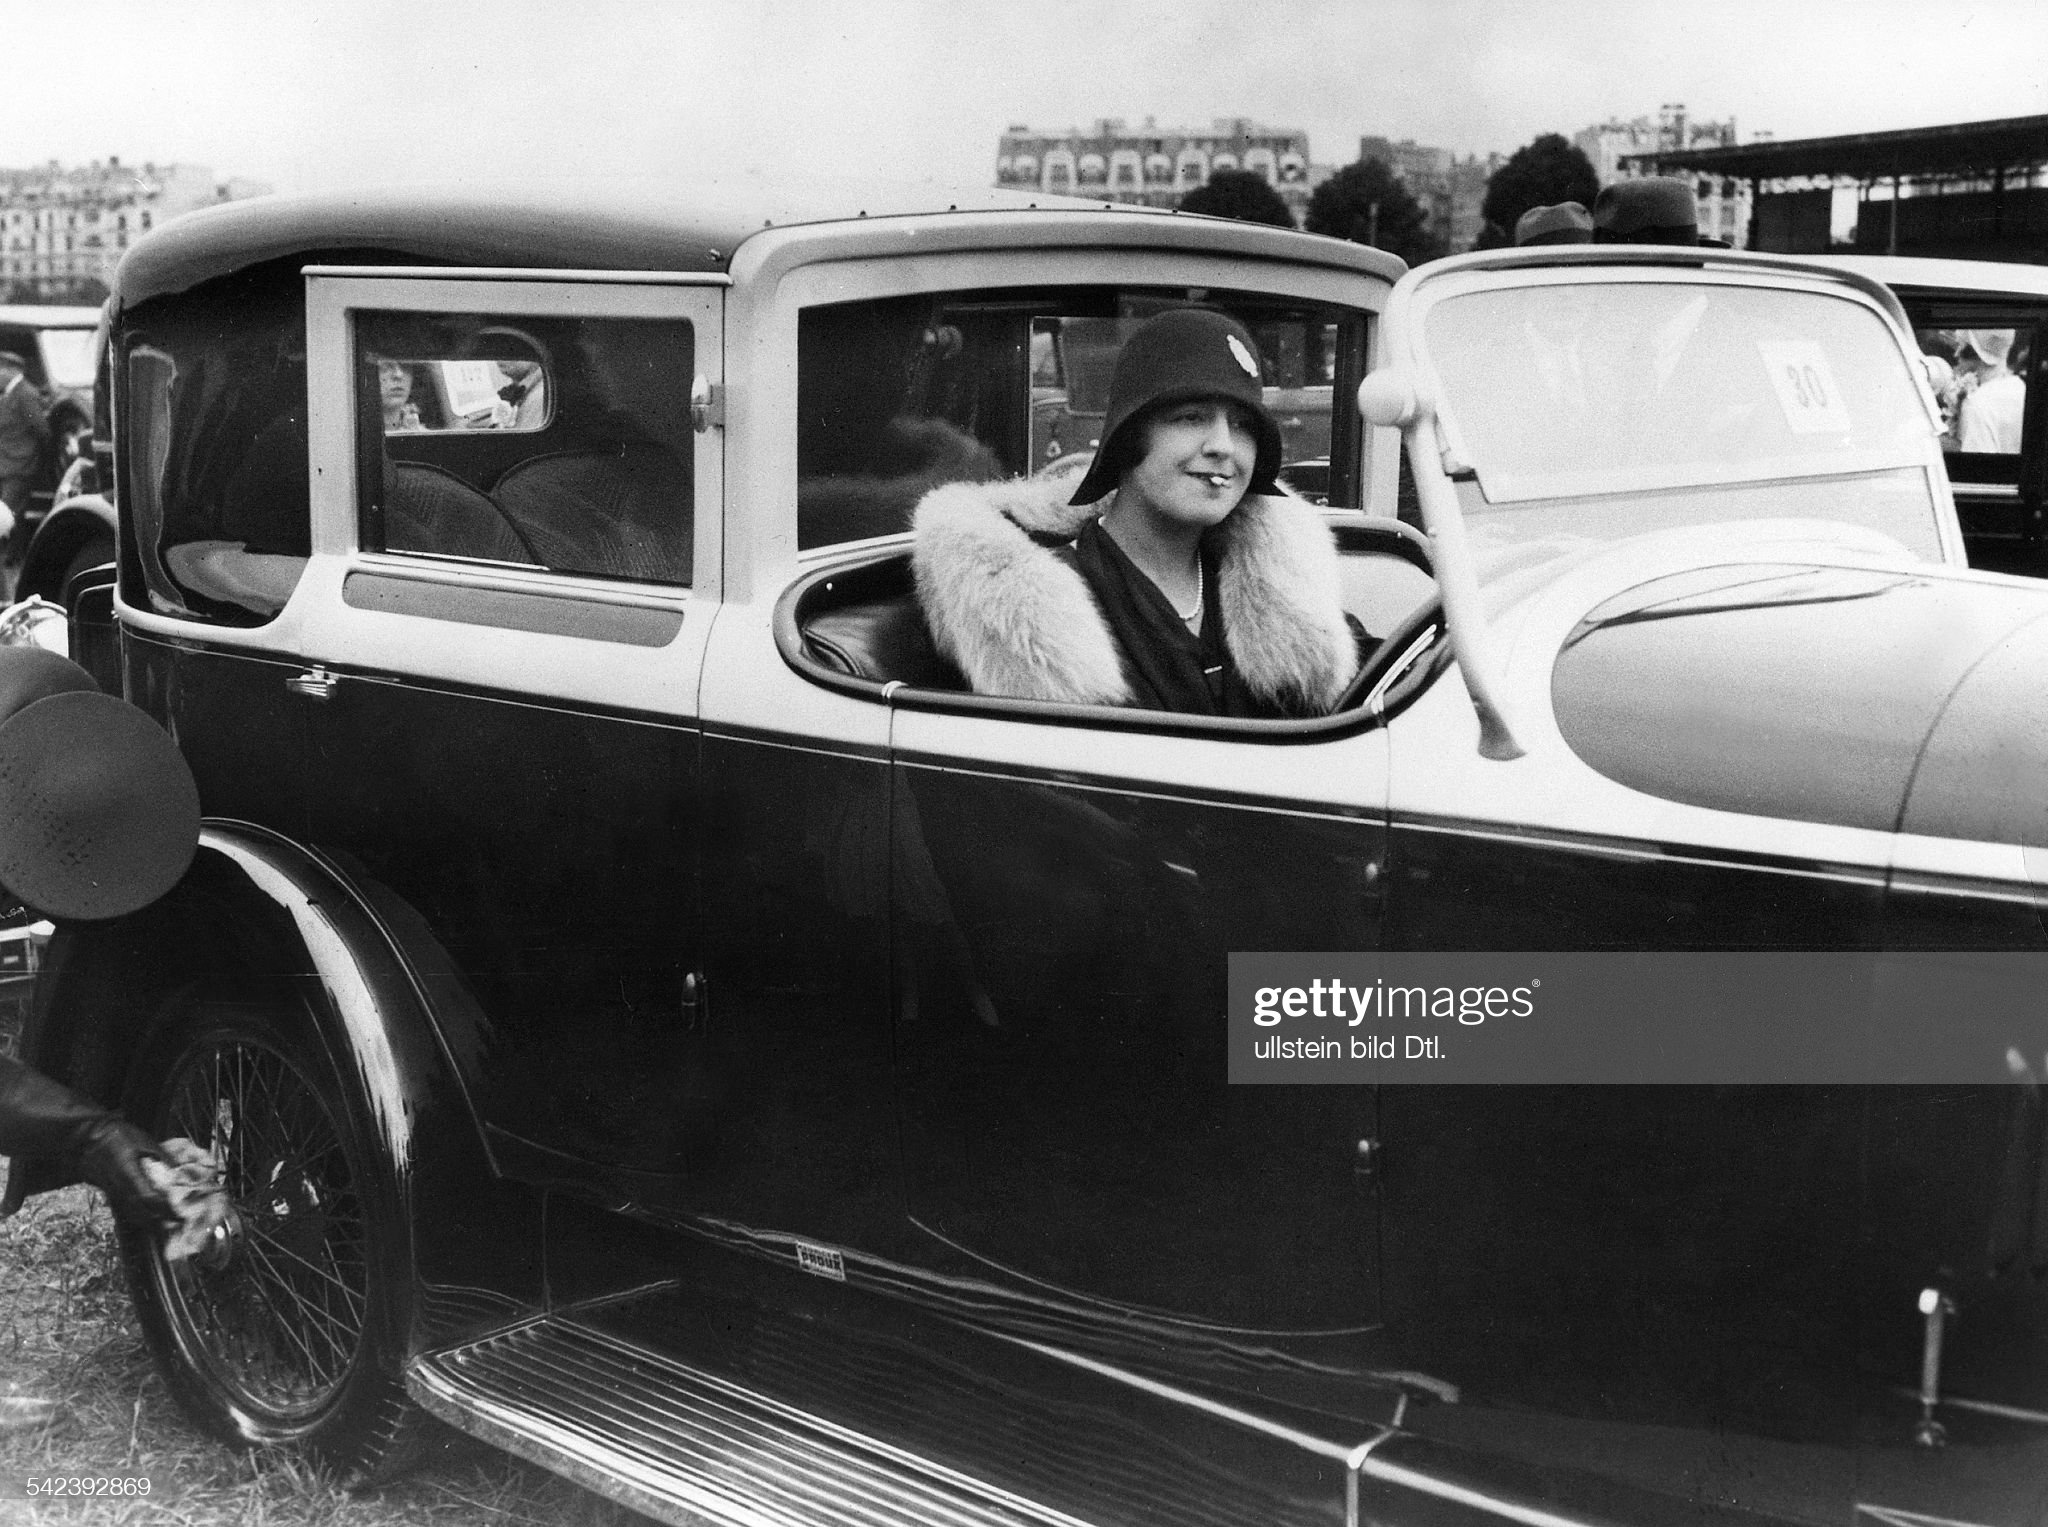 Luxury cars Mrs Mello Rahna behind the wheel of her Bugatti, while the driver polishes the spoke wheels - 1930 - Vintage property of ullstein bild : News Photo